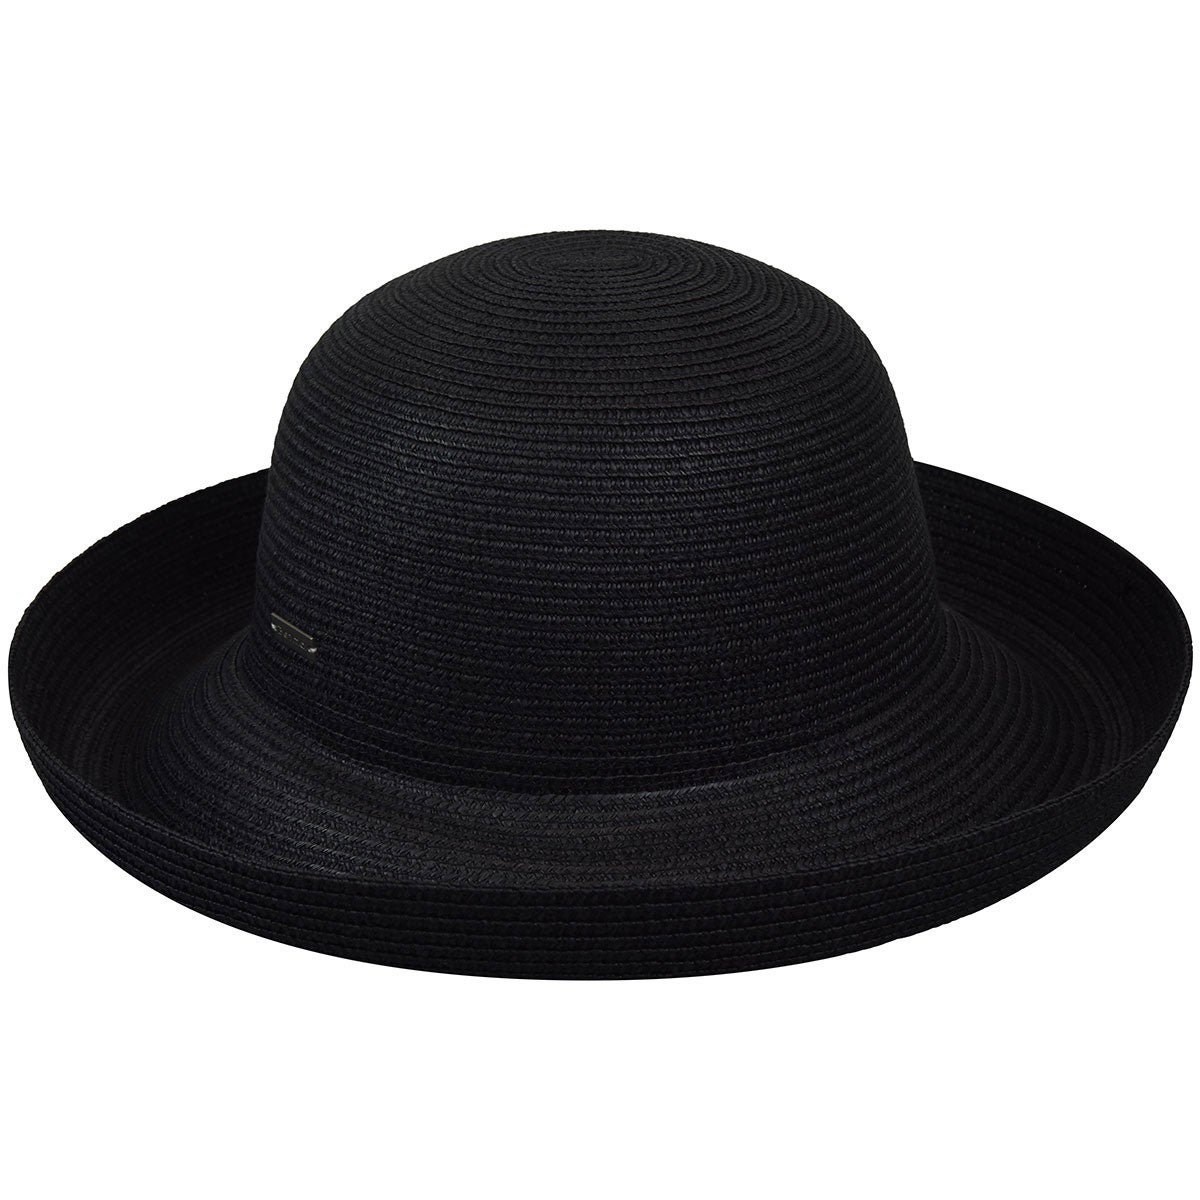 Betmar Classic Roll Up Hat in Black